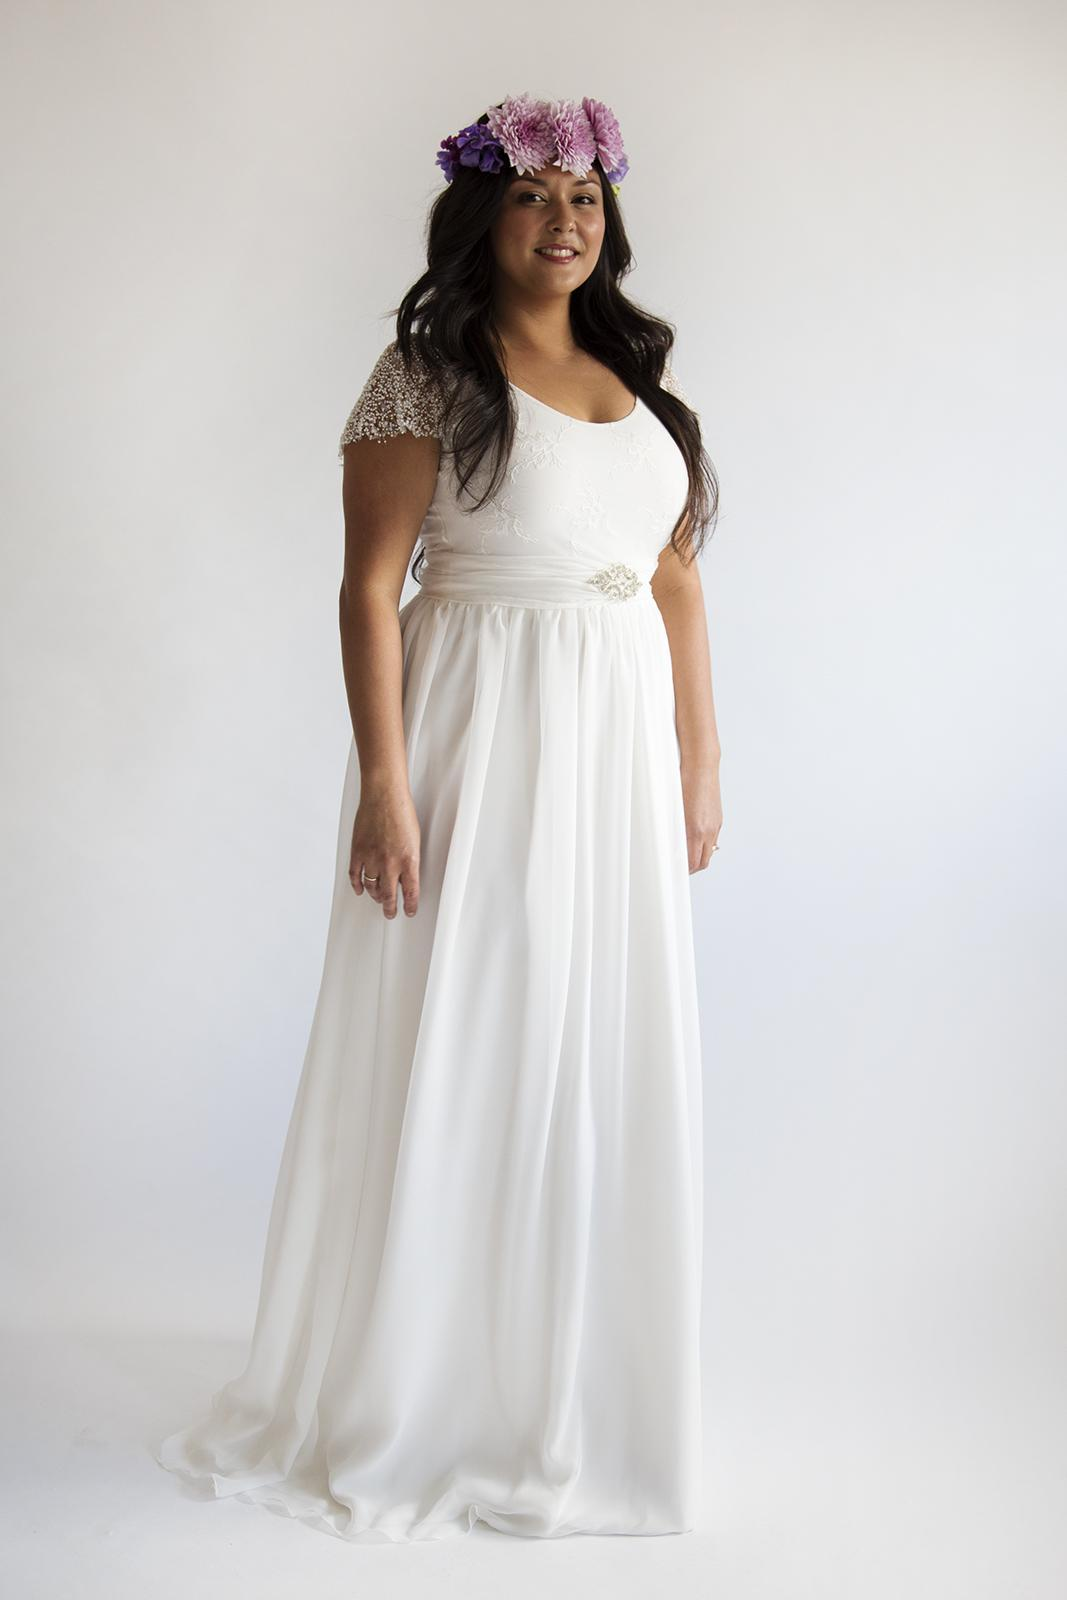 wedding dresses cold climates: Plus Size Beach Wedding Dresses